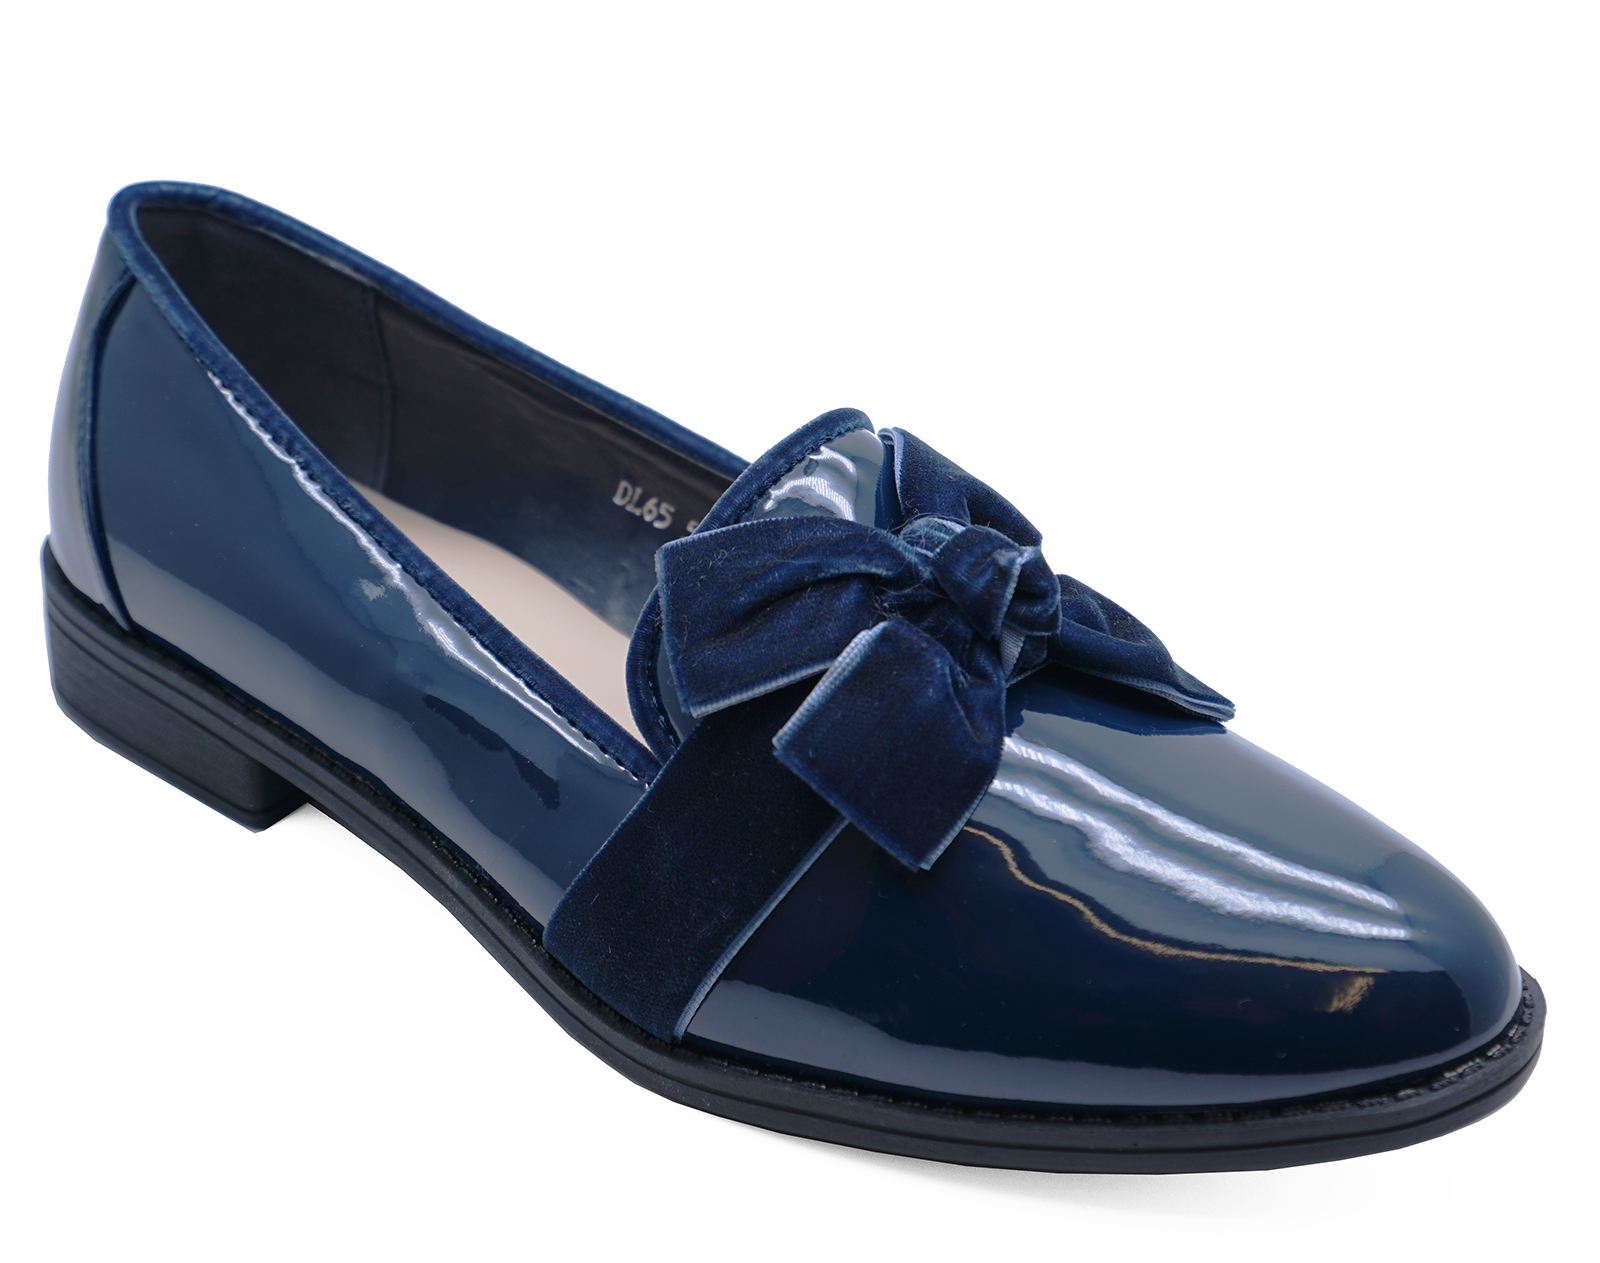 41d7c2ad353 Details about WOMENS SLIP-ON DARK BLUE PATENT LOAFERS SMART CASUAL WORK  SHOES PUMPS UK 3-8